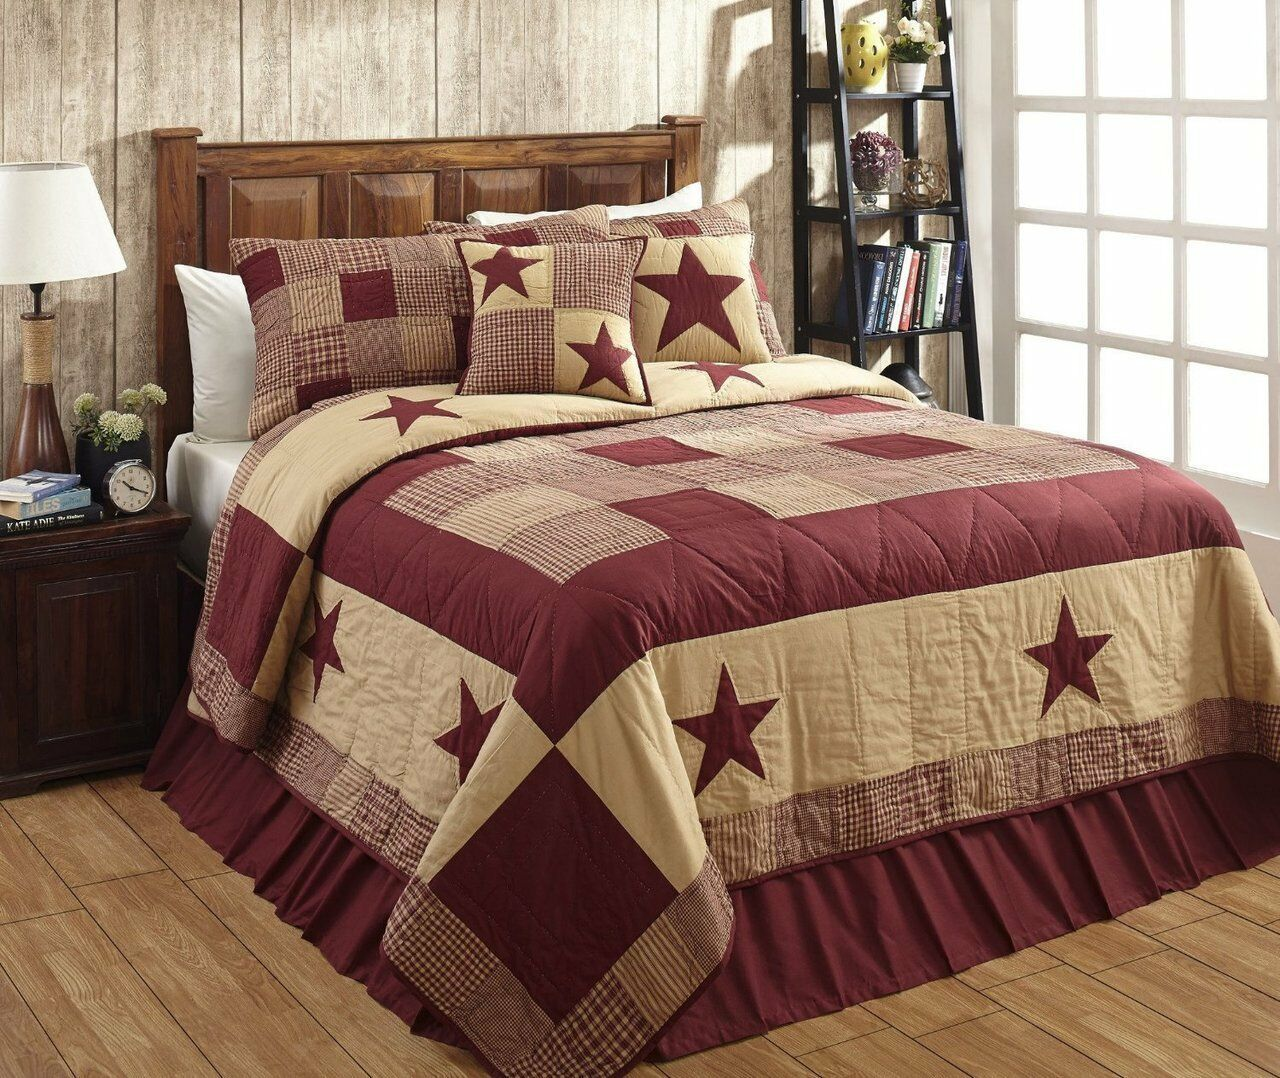 3pc Olivia's Heartland country star Jamestown Burgundy hand quilted QUILT  Shams